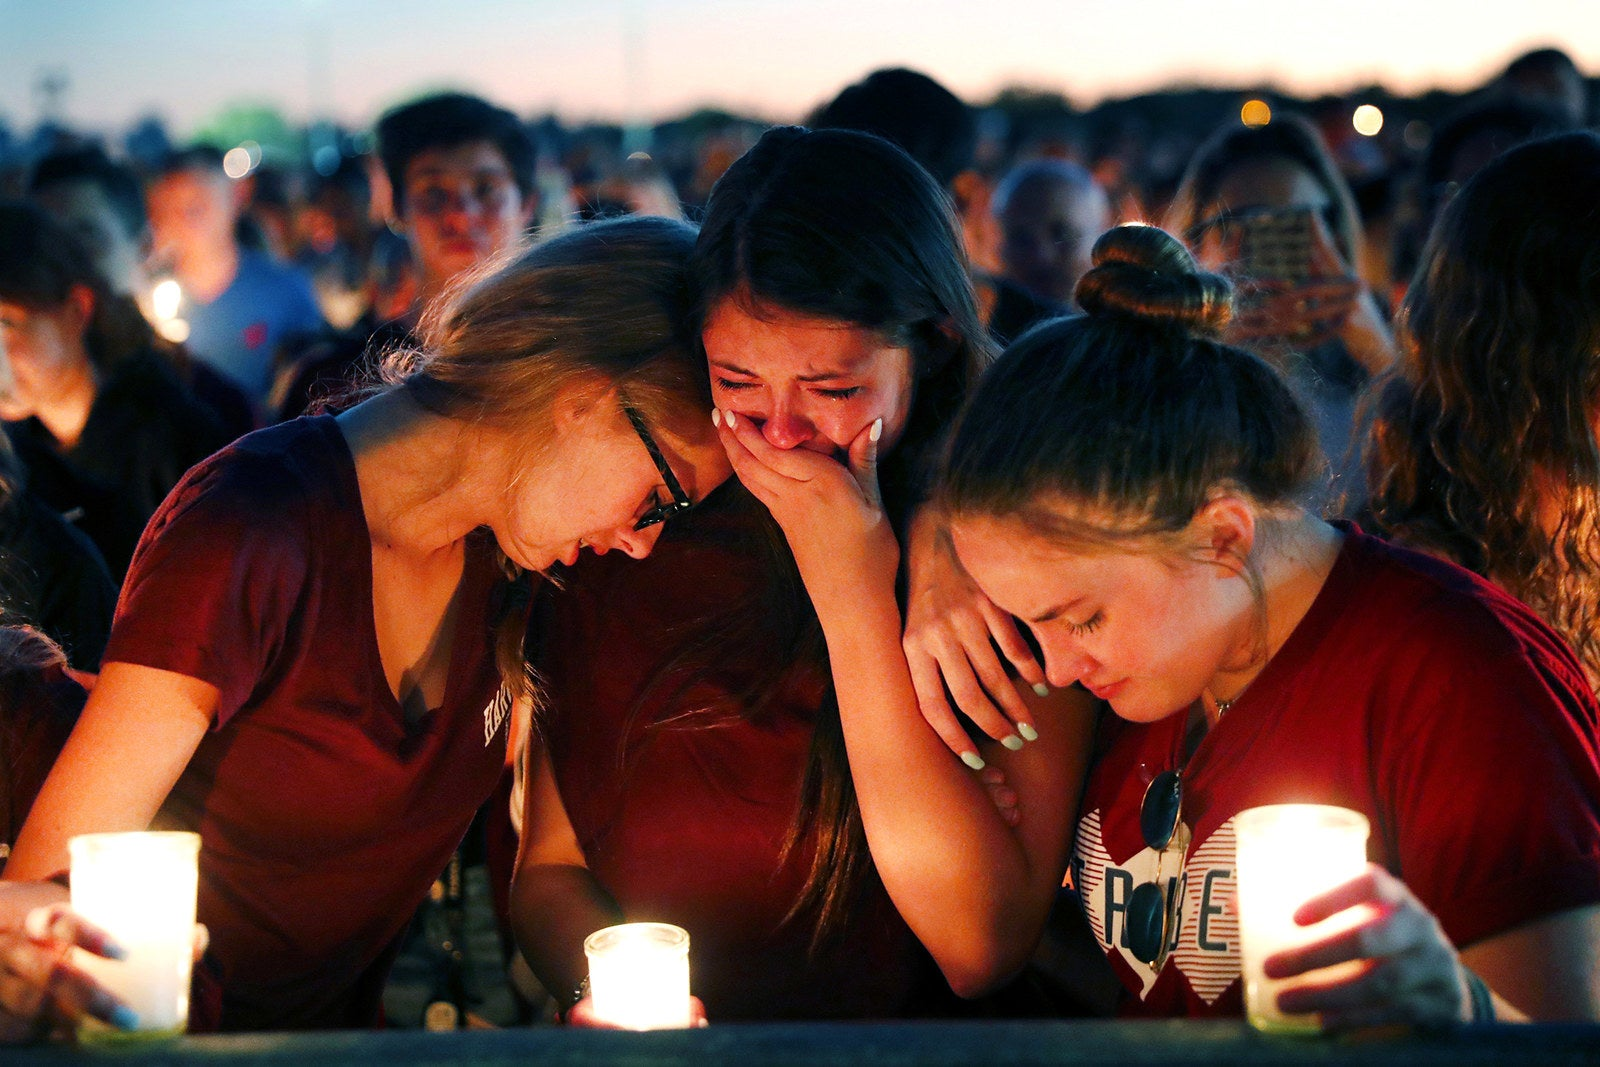 Students console each other during a candlelight vigil on Feb. 15 for the victims of the shooting at Marjory Stoneman Douglas High School.